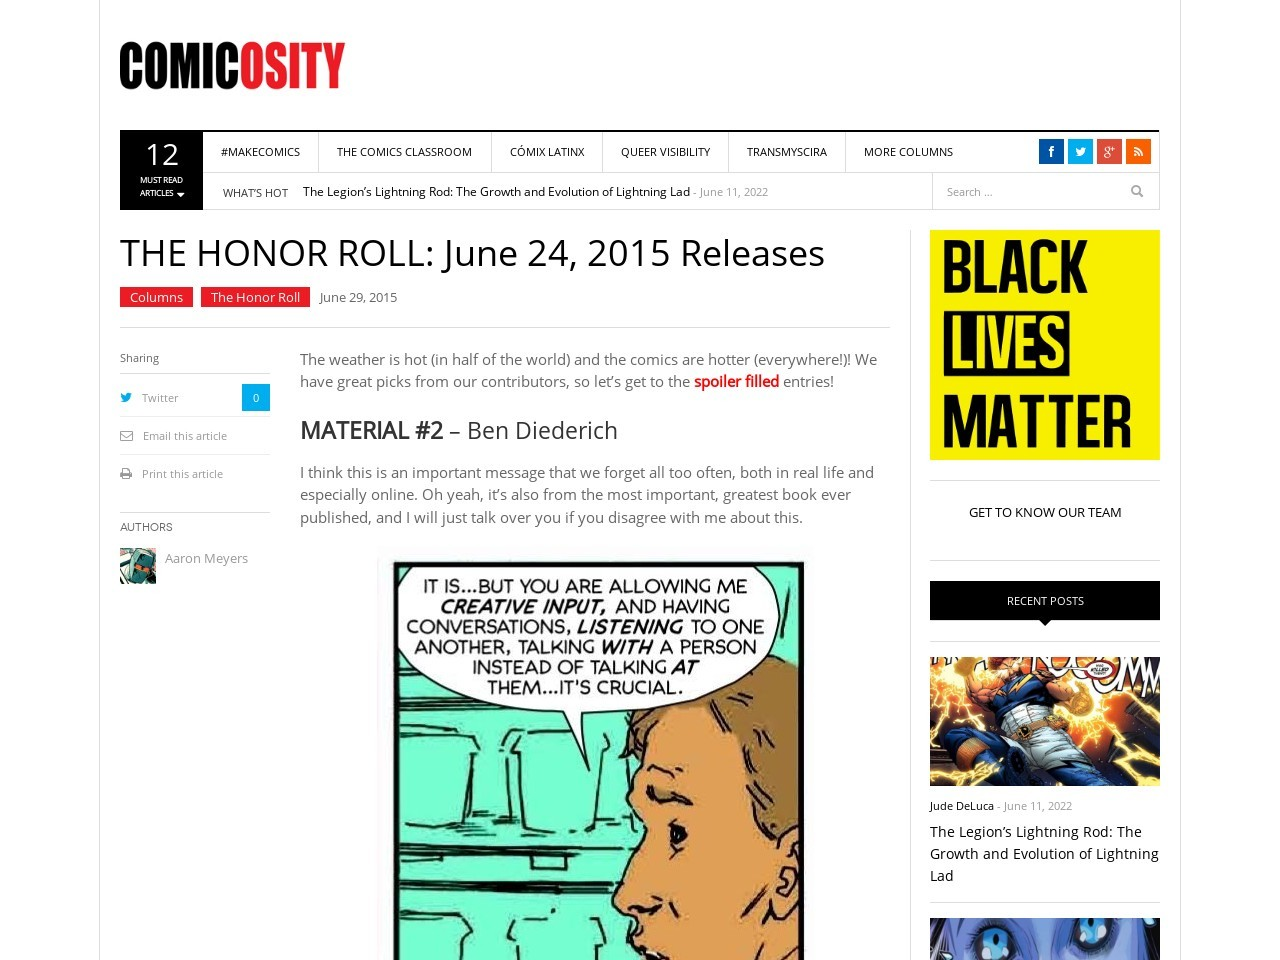 THE HONOR ROLL: June 24, 2015 Releases